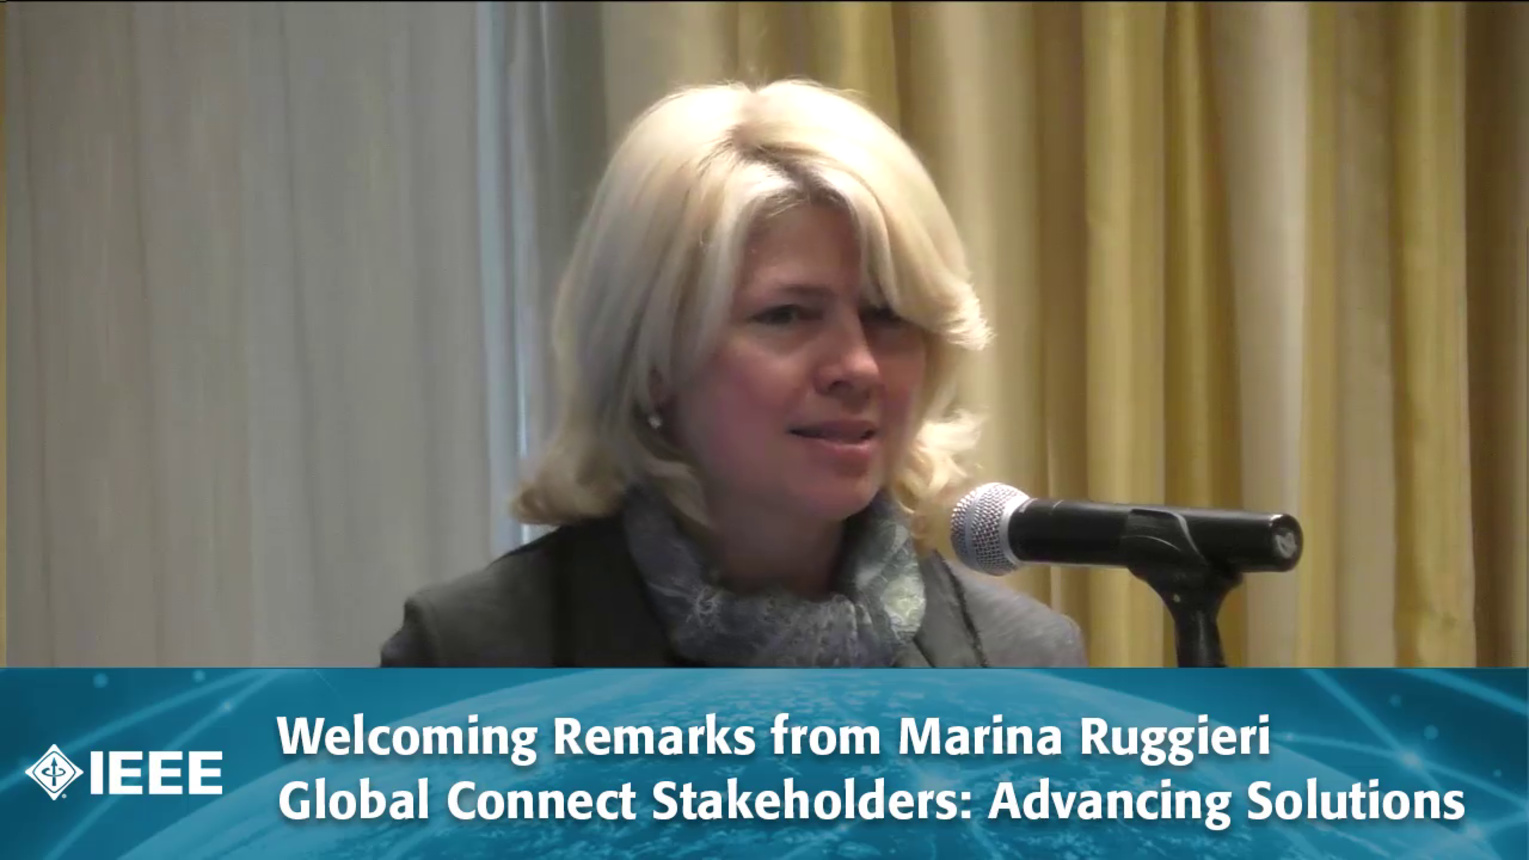 Welcoming Remarks from Marina Ruggieri - Global Connect Stakeholders: Advancing Solutions